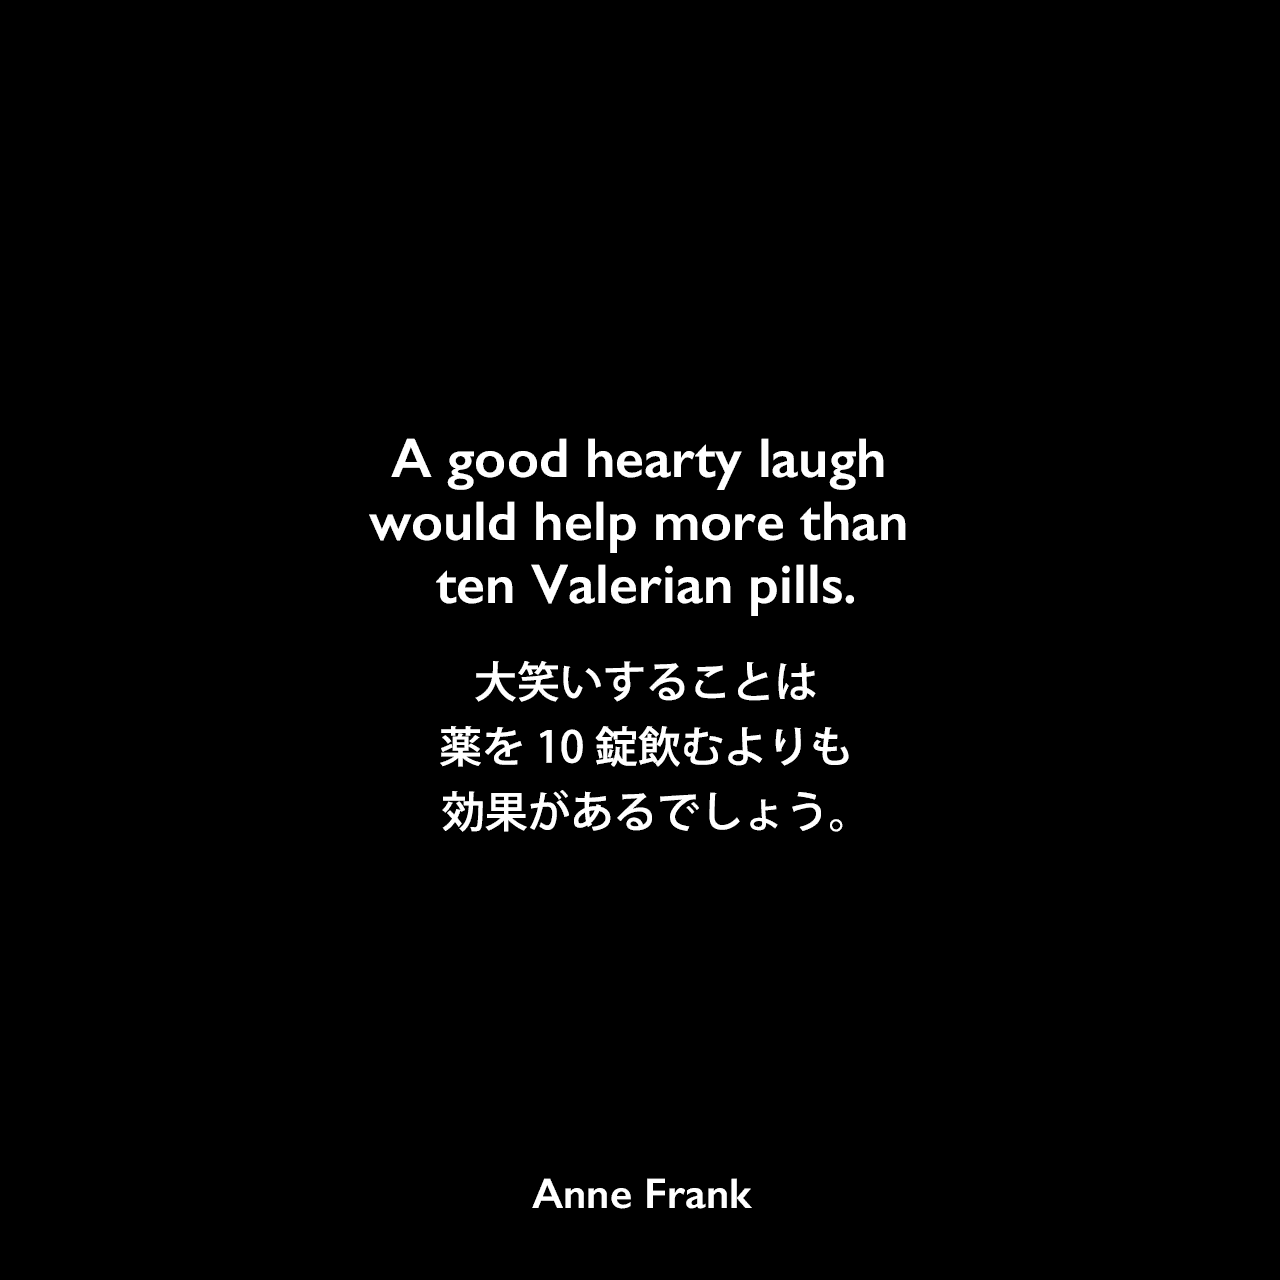 A good hearty laugh would help more than ten Valerian pills.大笑いすることは、薬を10錠飲むよりも効果があるでしょう。Anne Frank